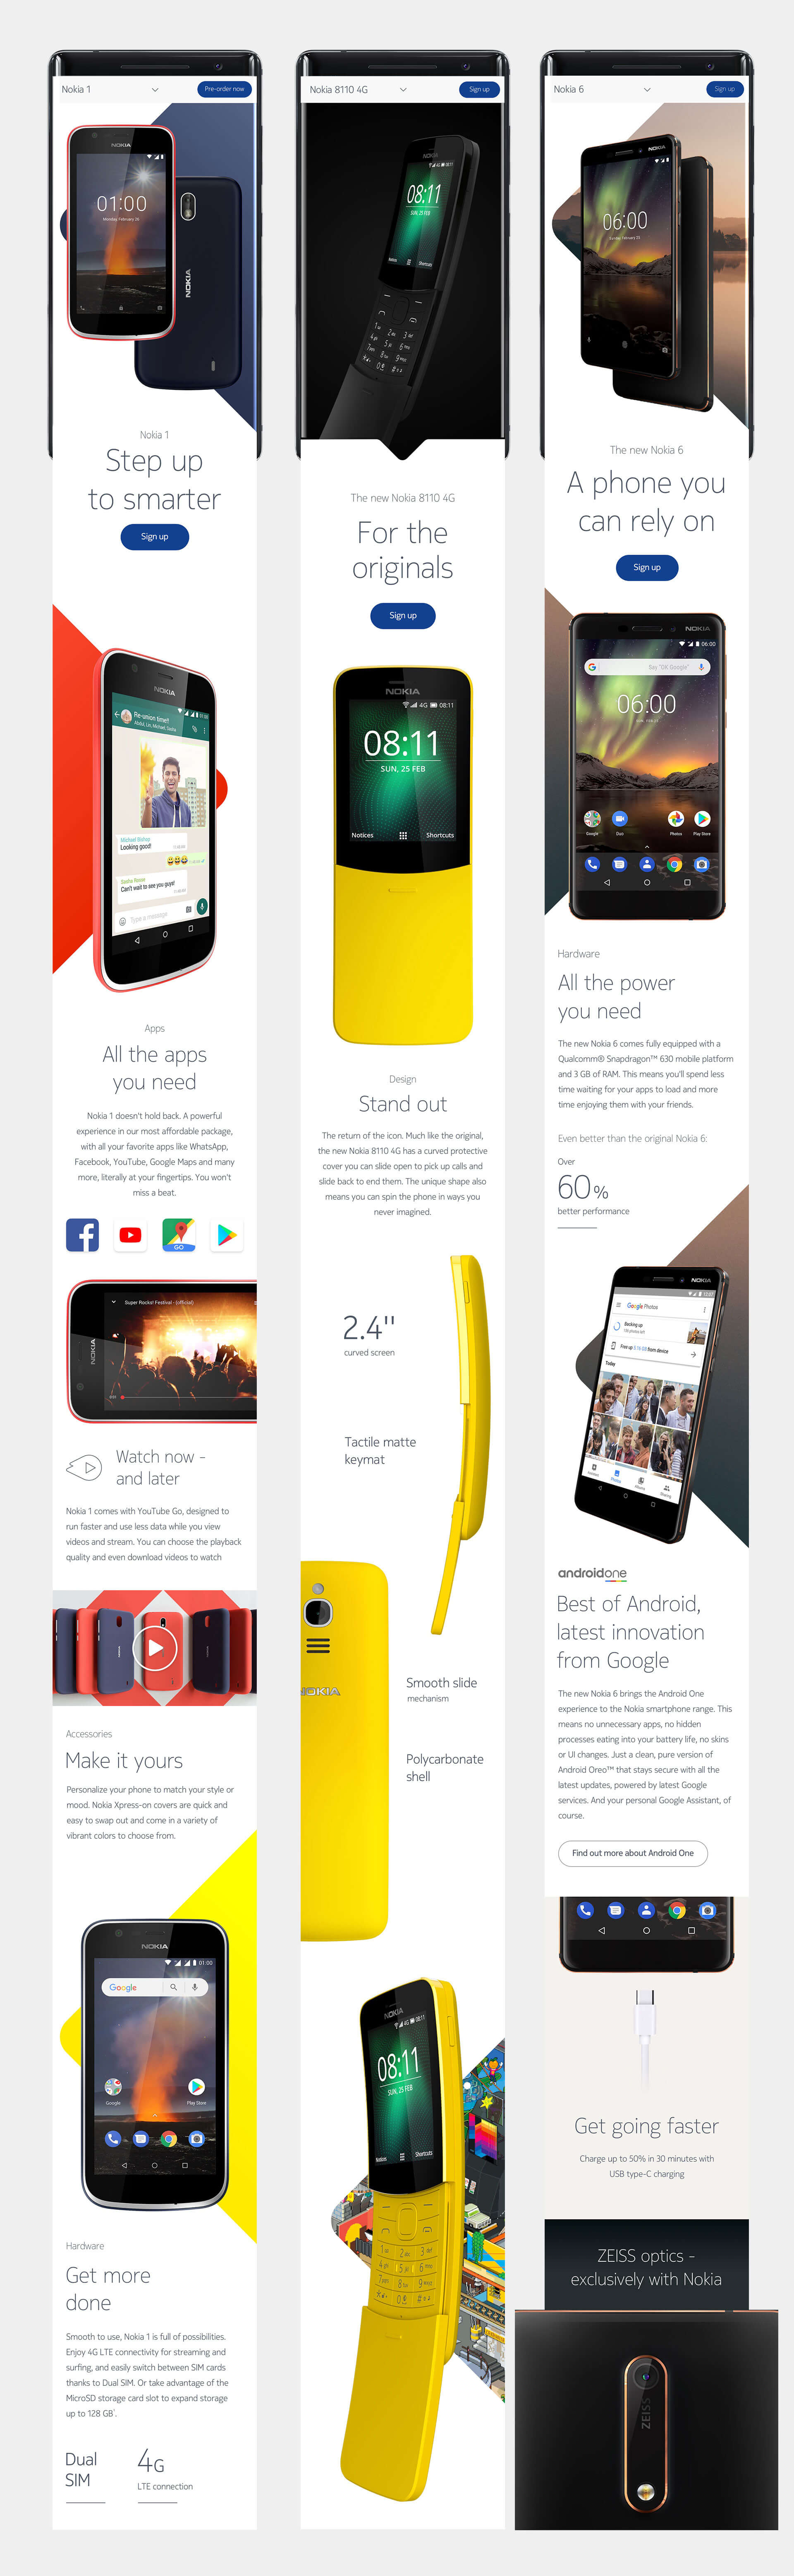 img_nokia_productpages_mobile